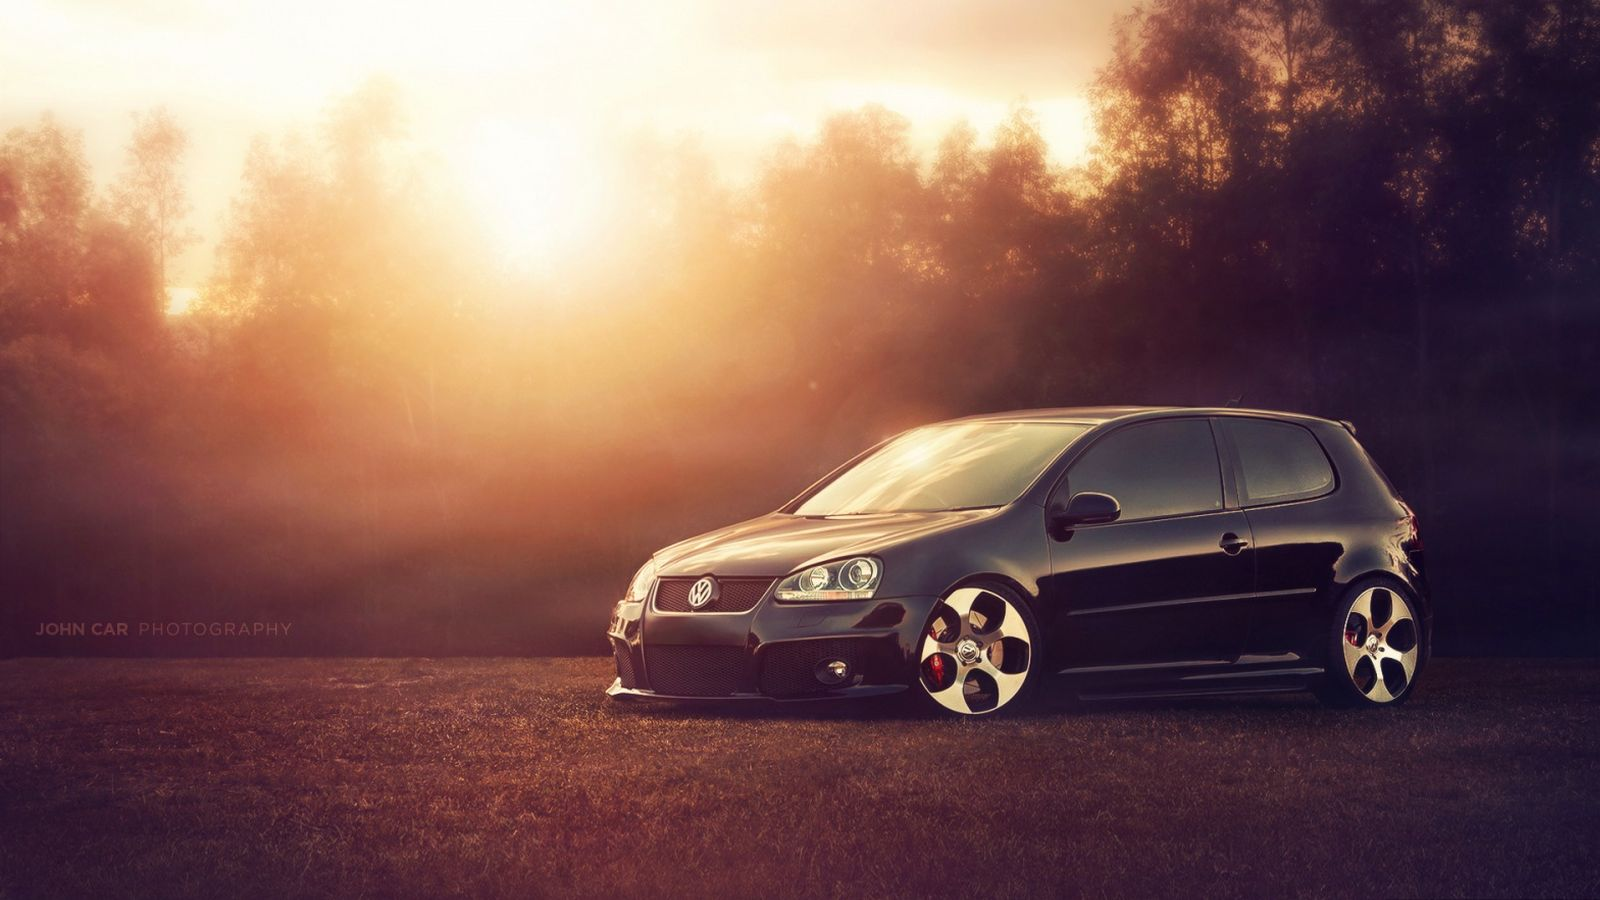 volkswagen golf gti mkv wallpaper 1600x900 10 000 fonds